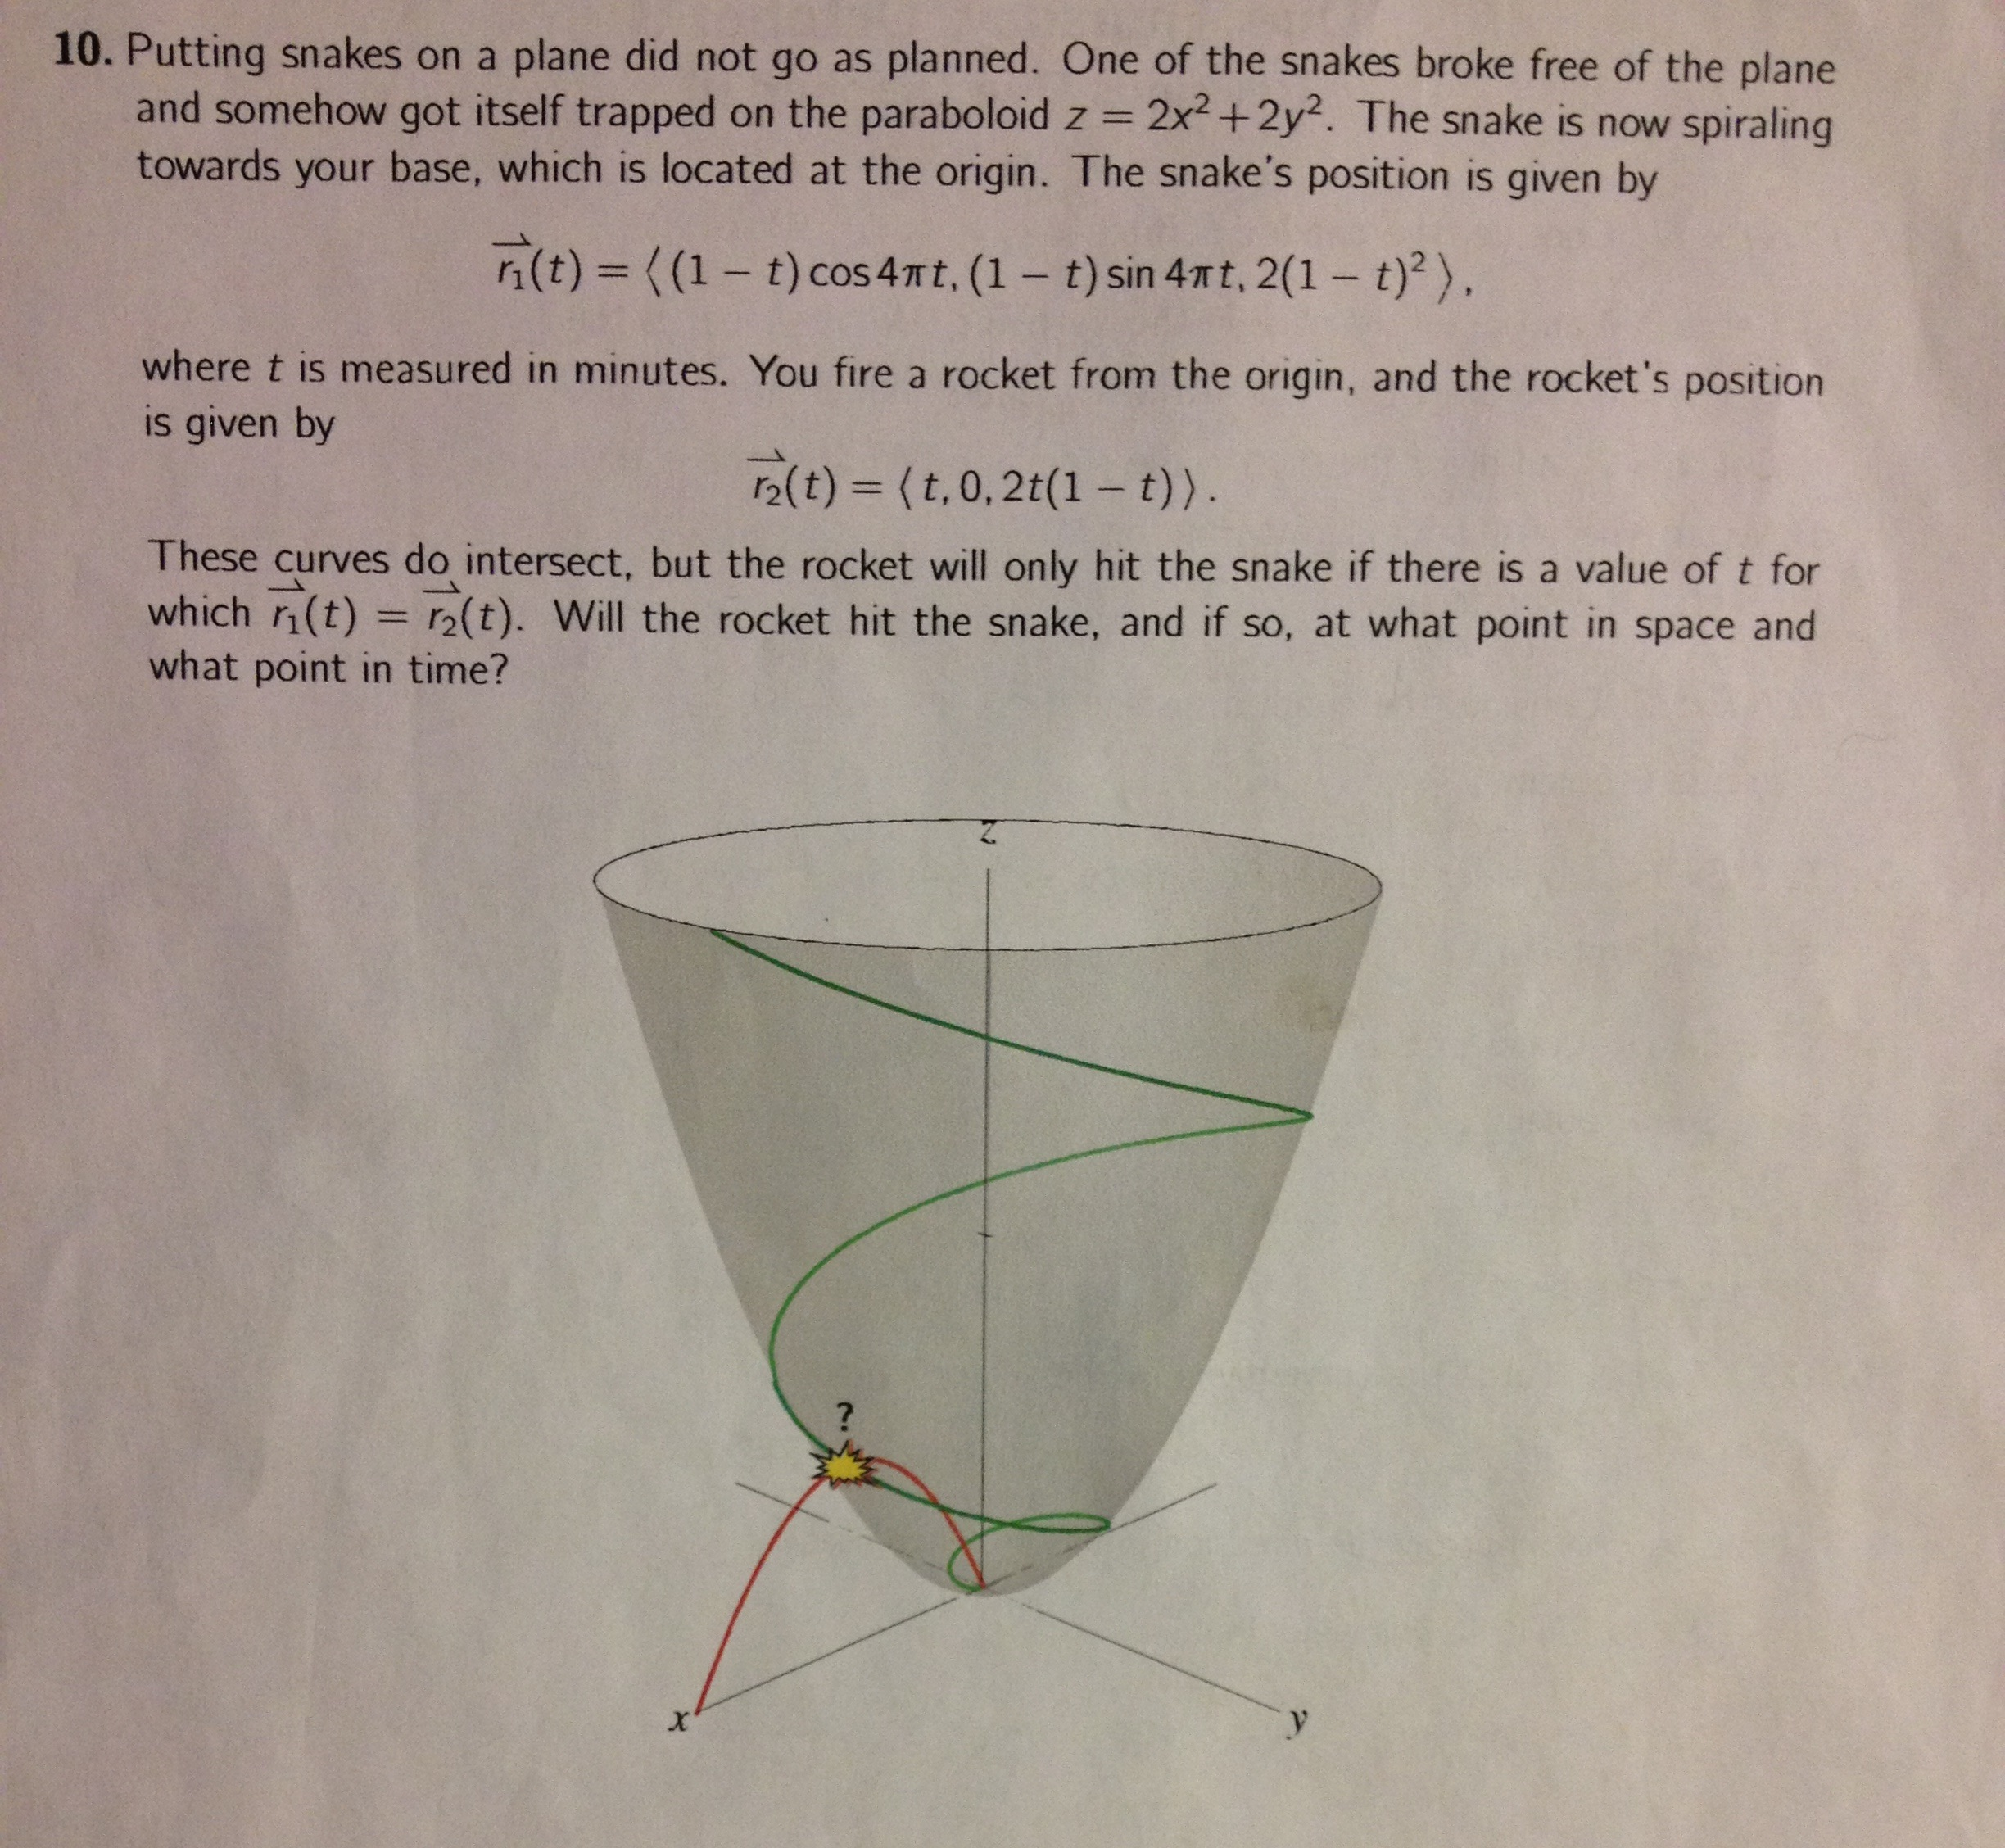 Solved A Snake Got Itself Trapped On The Paraboloid Z 2x Snakes Diagram Putting Plane Did Not Go As Planned O